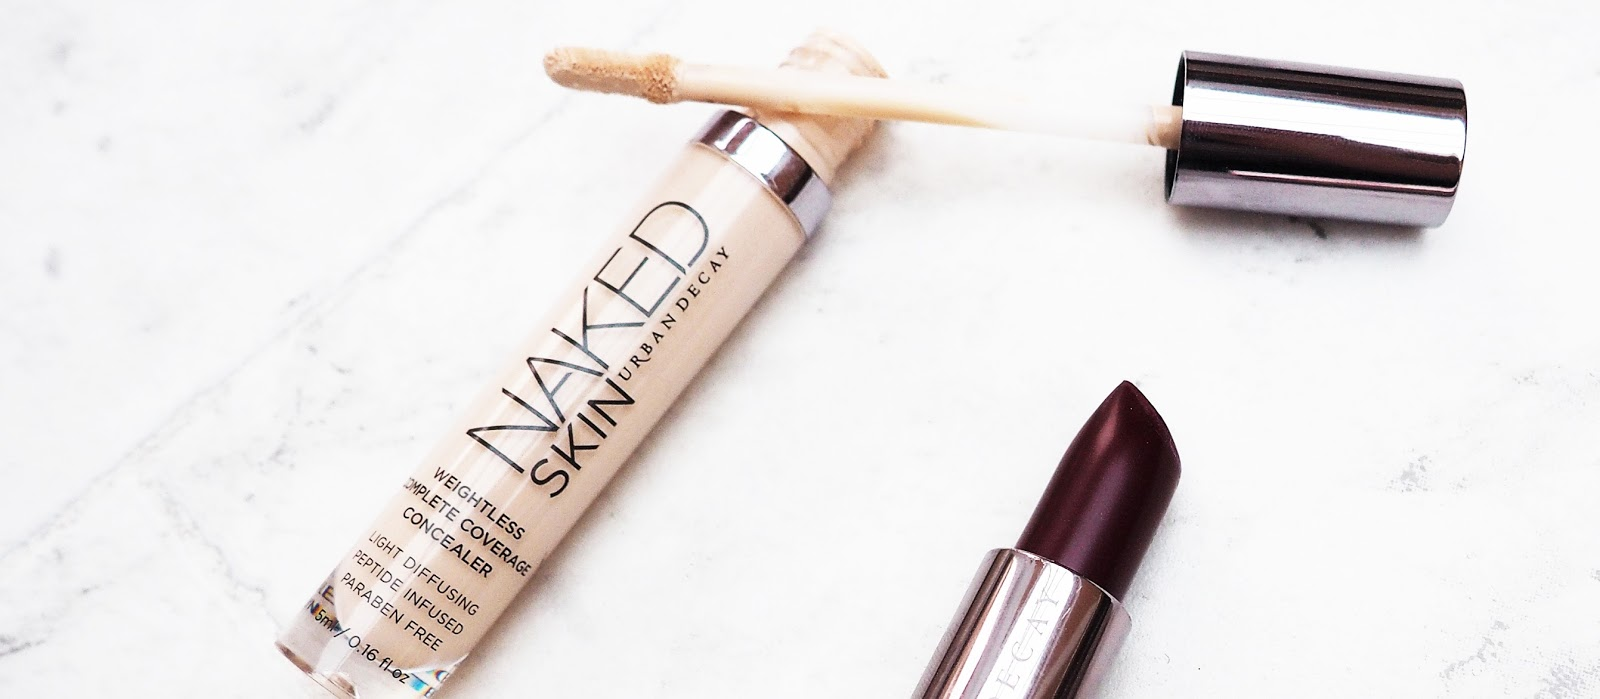 Urban Decay Concealer, Debenhams